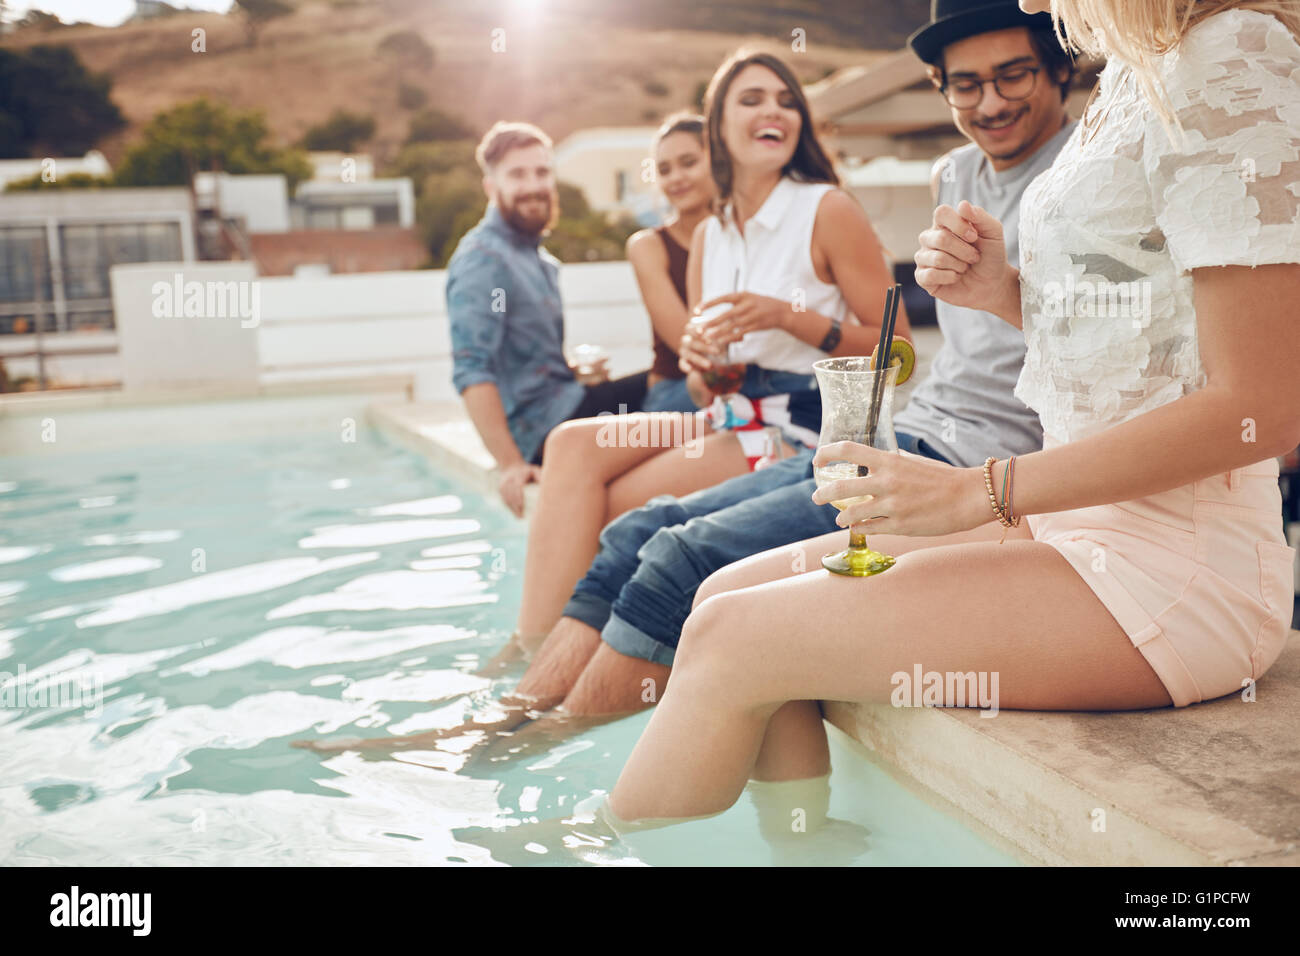 Shot of young people drinking cocktails the swimming pool. Friends sitting on the edge of the pool with feet in - Stock Image